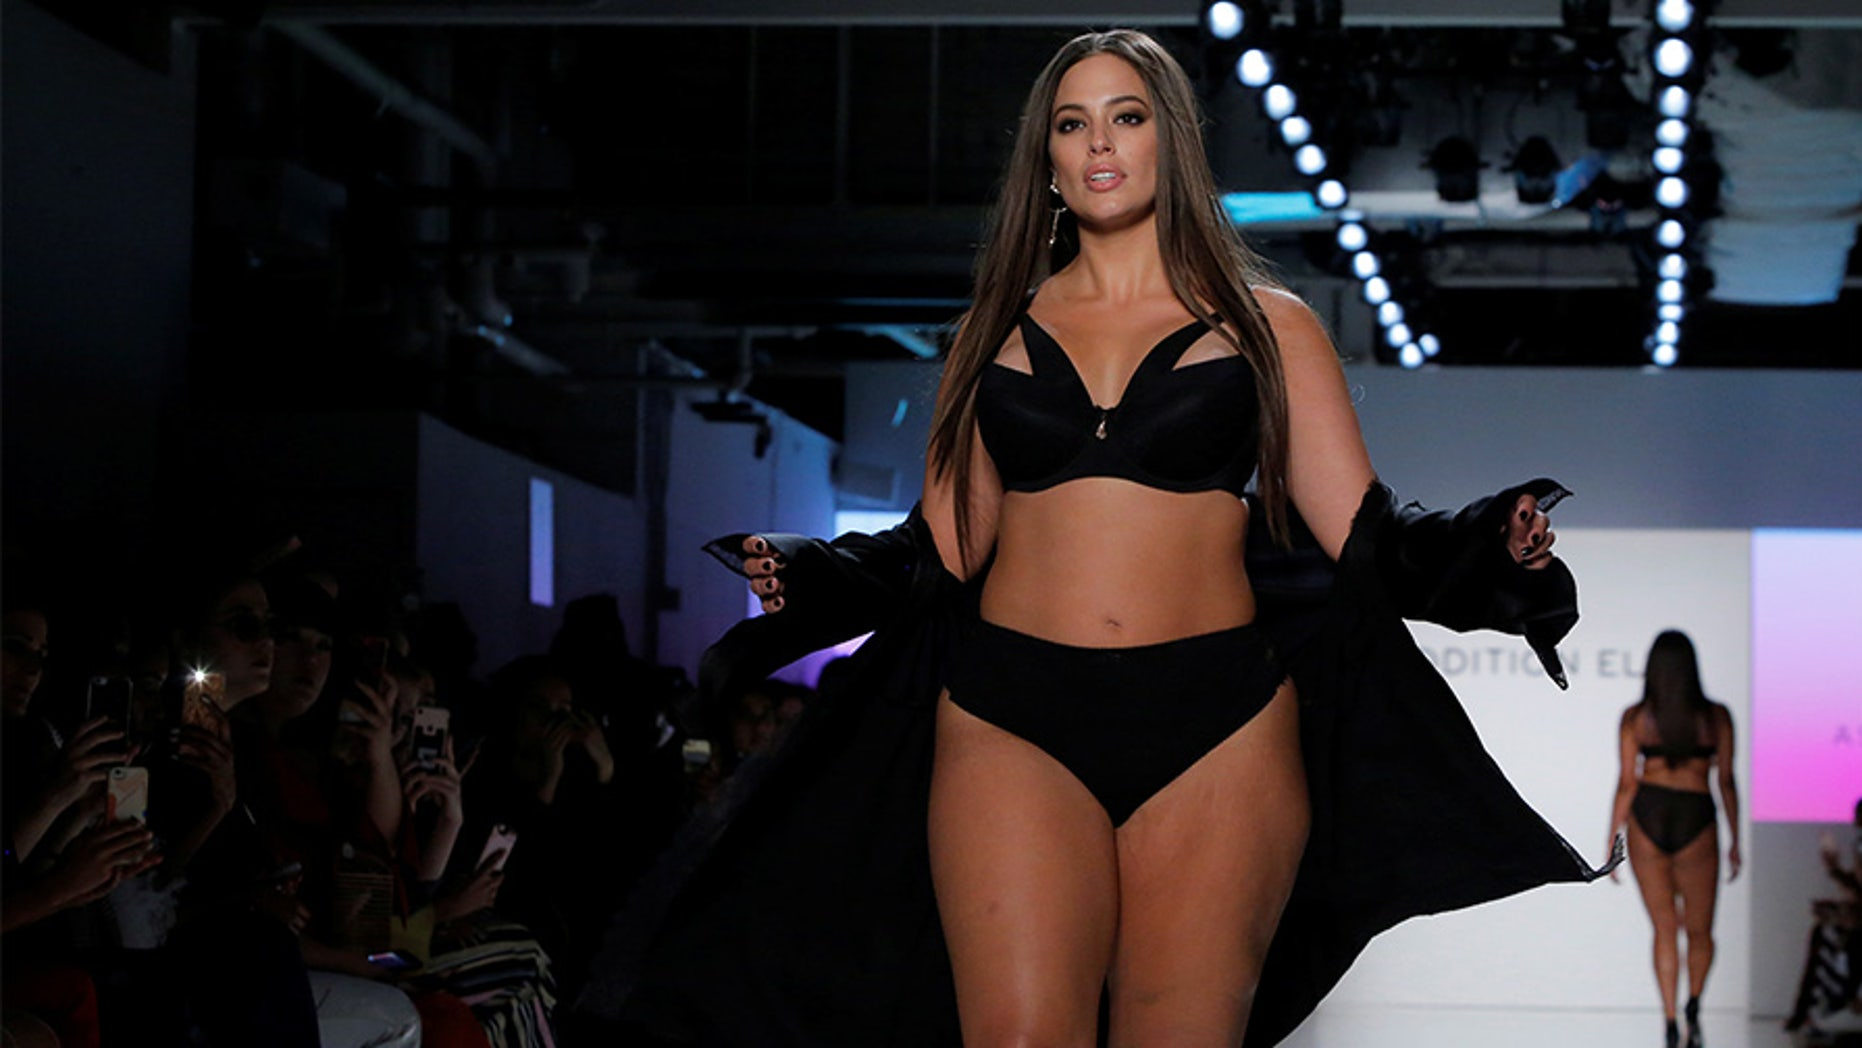 Model Ashley Graham walks the runway during the Addition Elle Spring/Summer 2018 presentation at New York Fashion Week in Manhattan, New York, U.S., September 11, 2017.  REUTERS/Andrew Kelly - RC16E0F1A890